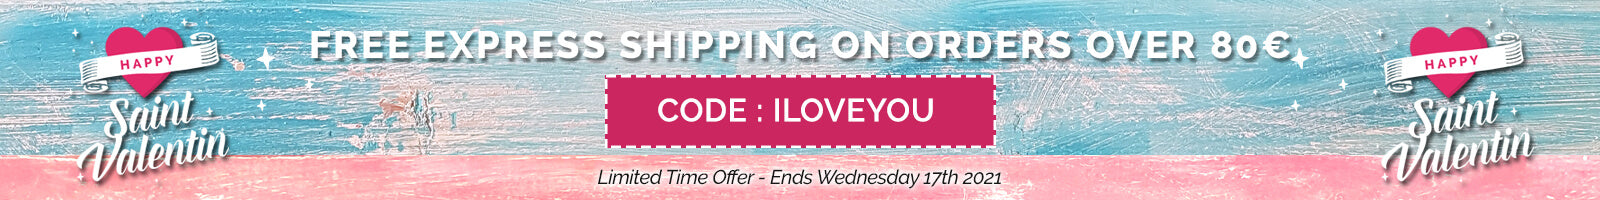 Free express shipping on orders over 80€ with code ILOVEYOU